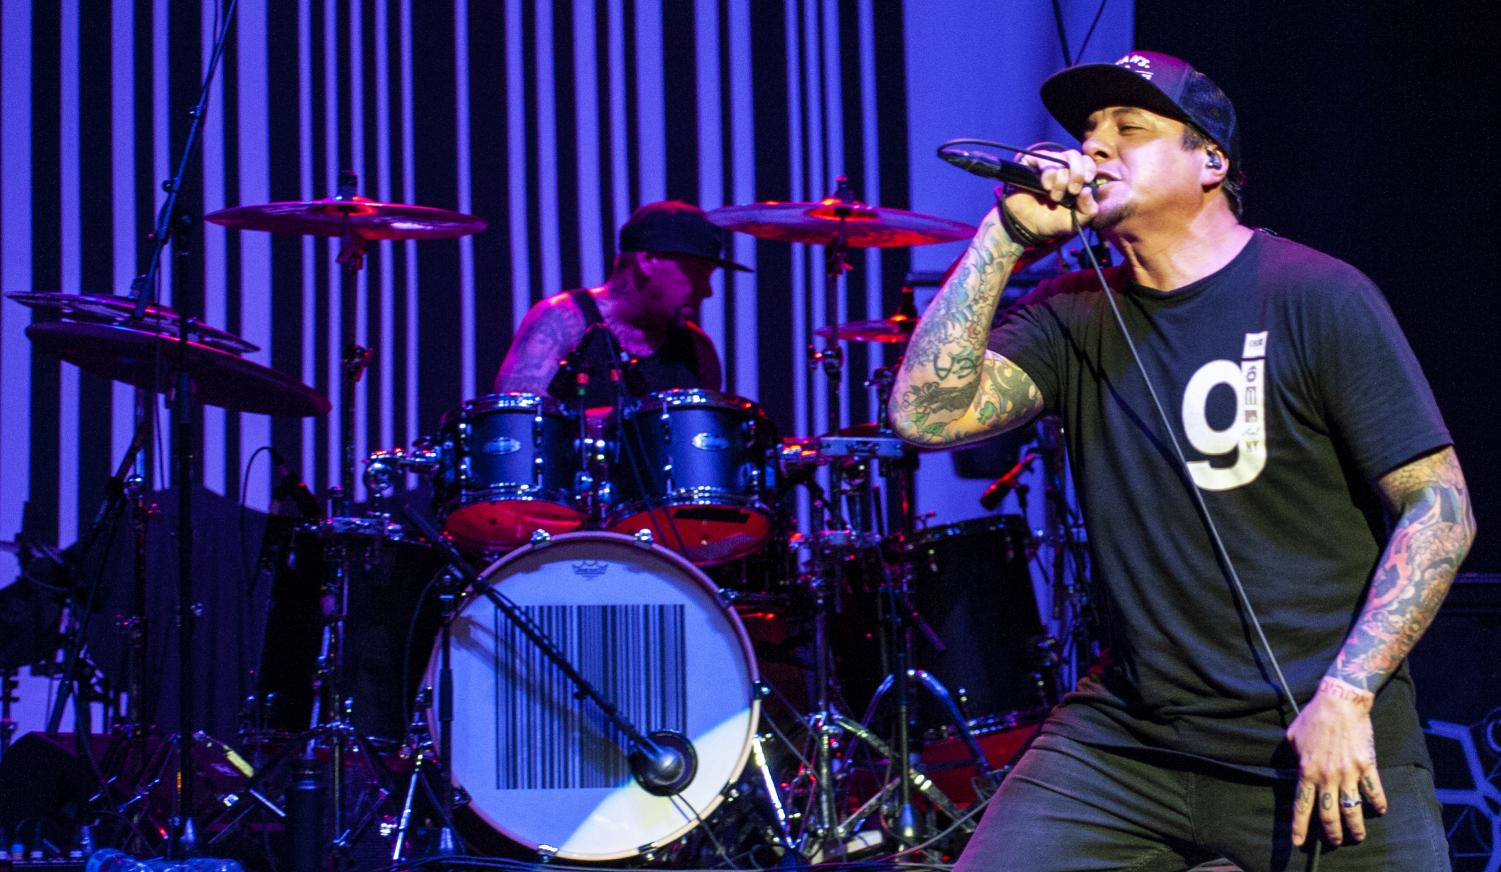 Sonny+Sandoval+of+P.O.D.+sings+Friday%2C+Aug.+31%2C+2018%2C+during+the+Gen+X+Tour+inside+the+Grandstand+stadium+at+the+Du+Quoin+State+Fair.+%28Mary+Barnhart+%7C+%40MaryBarnhartDE%29